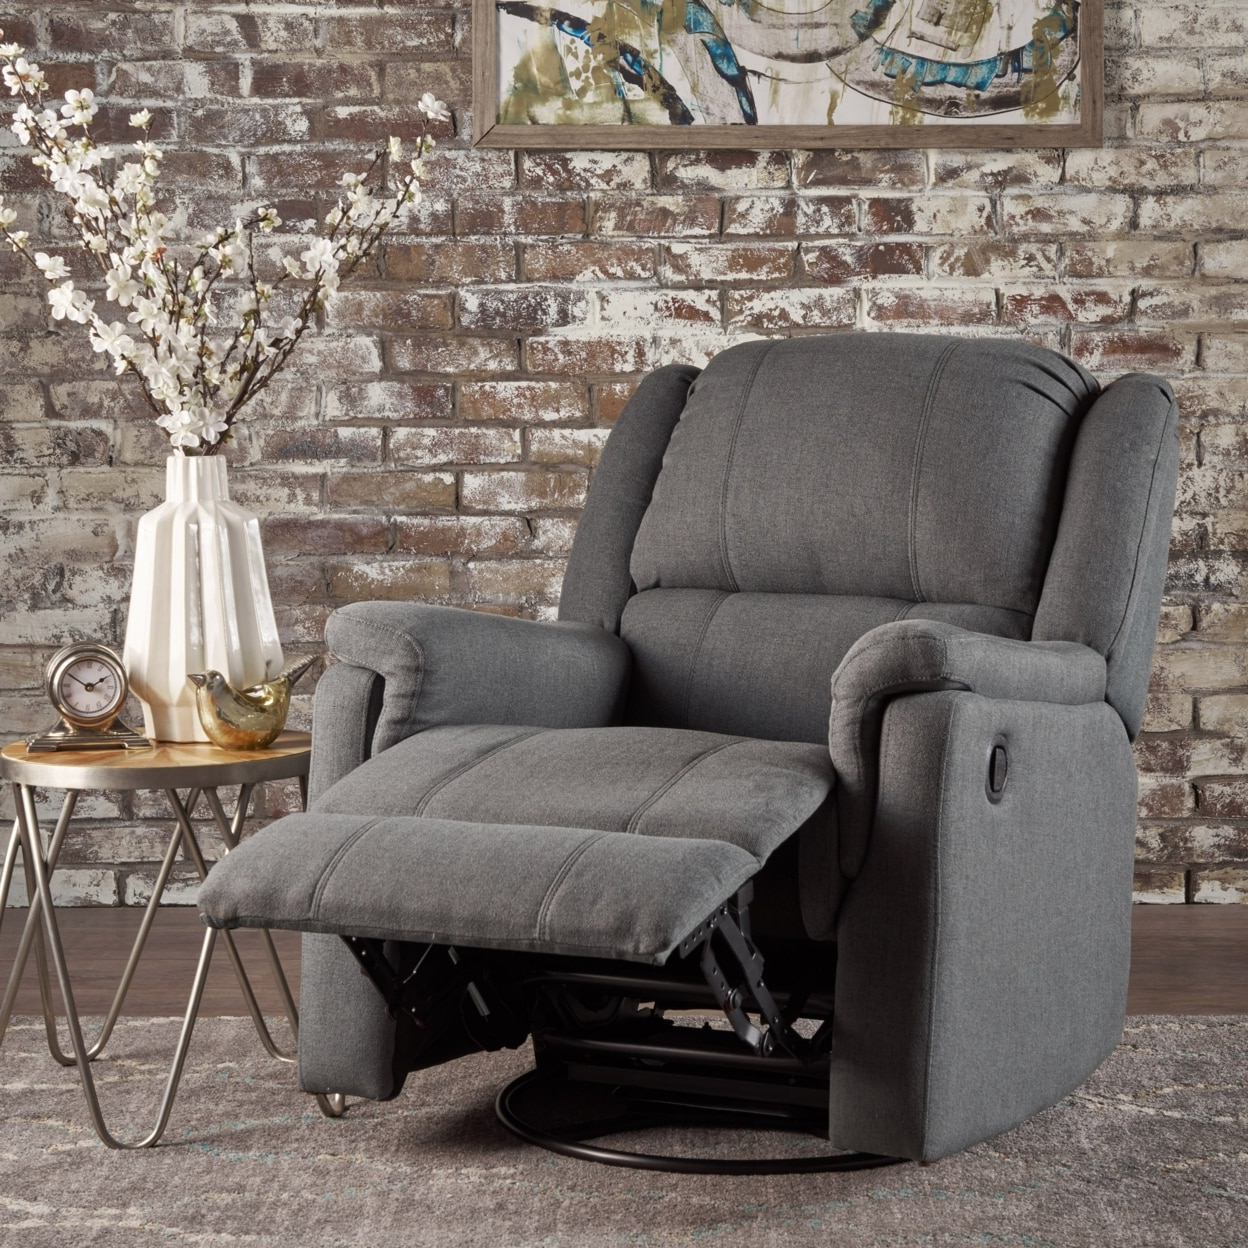 2018 Decker Ii Fabric Swivel Glider Recliners Inside Jemma Tufted Fabric Swivel Gliding Recliner Chair In Living Room (View 2 of 20)